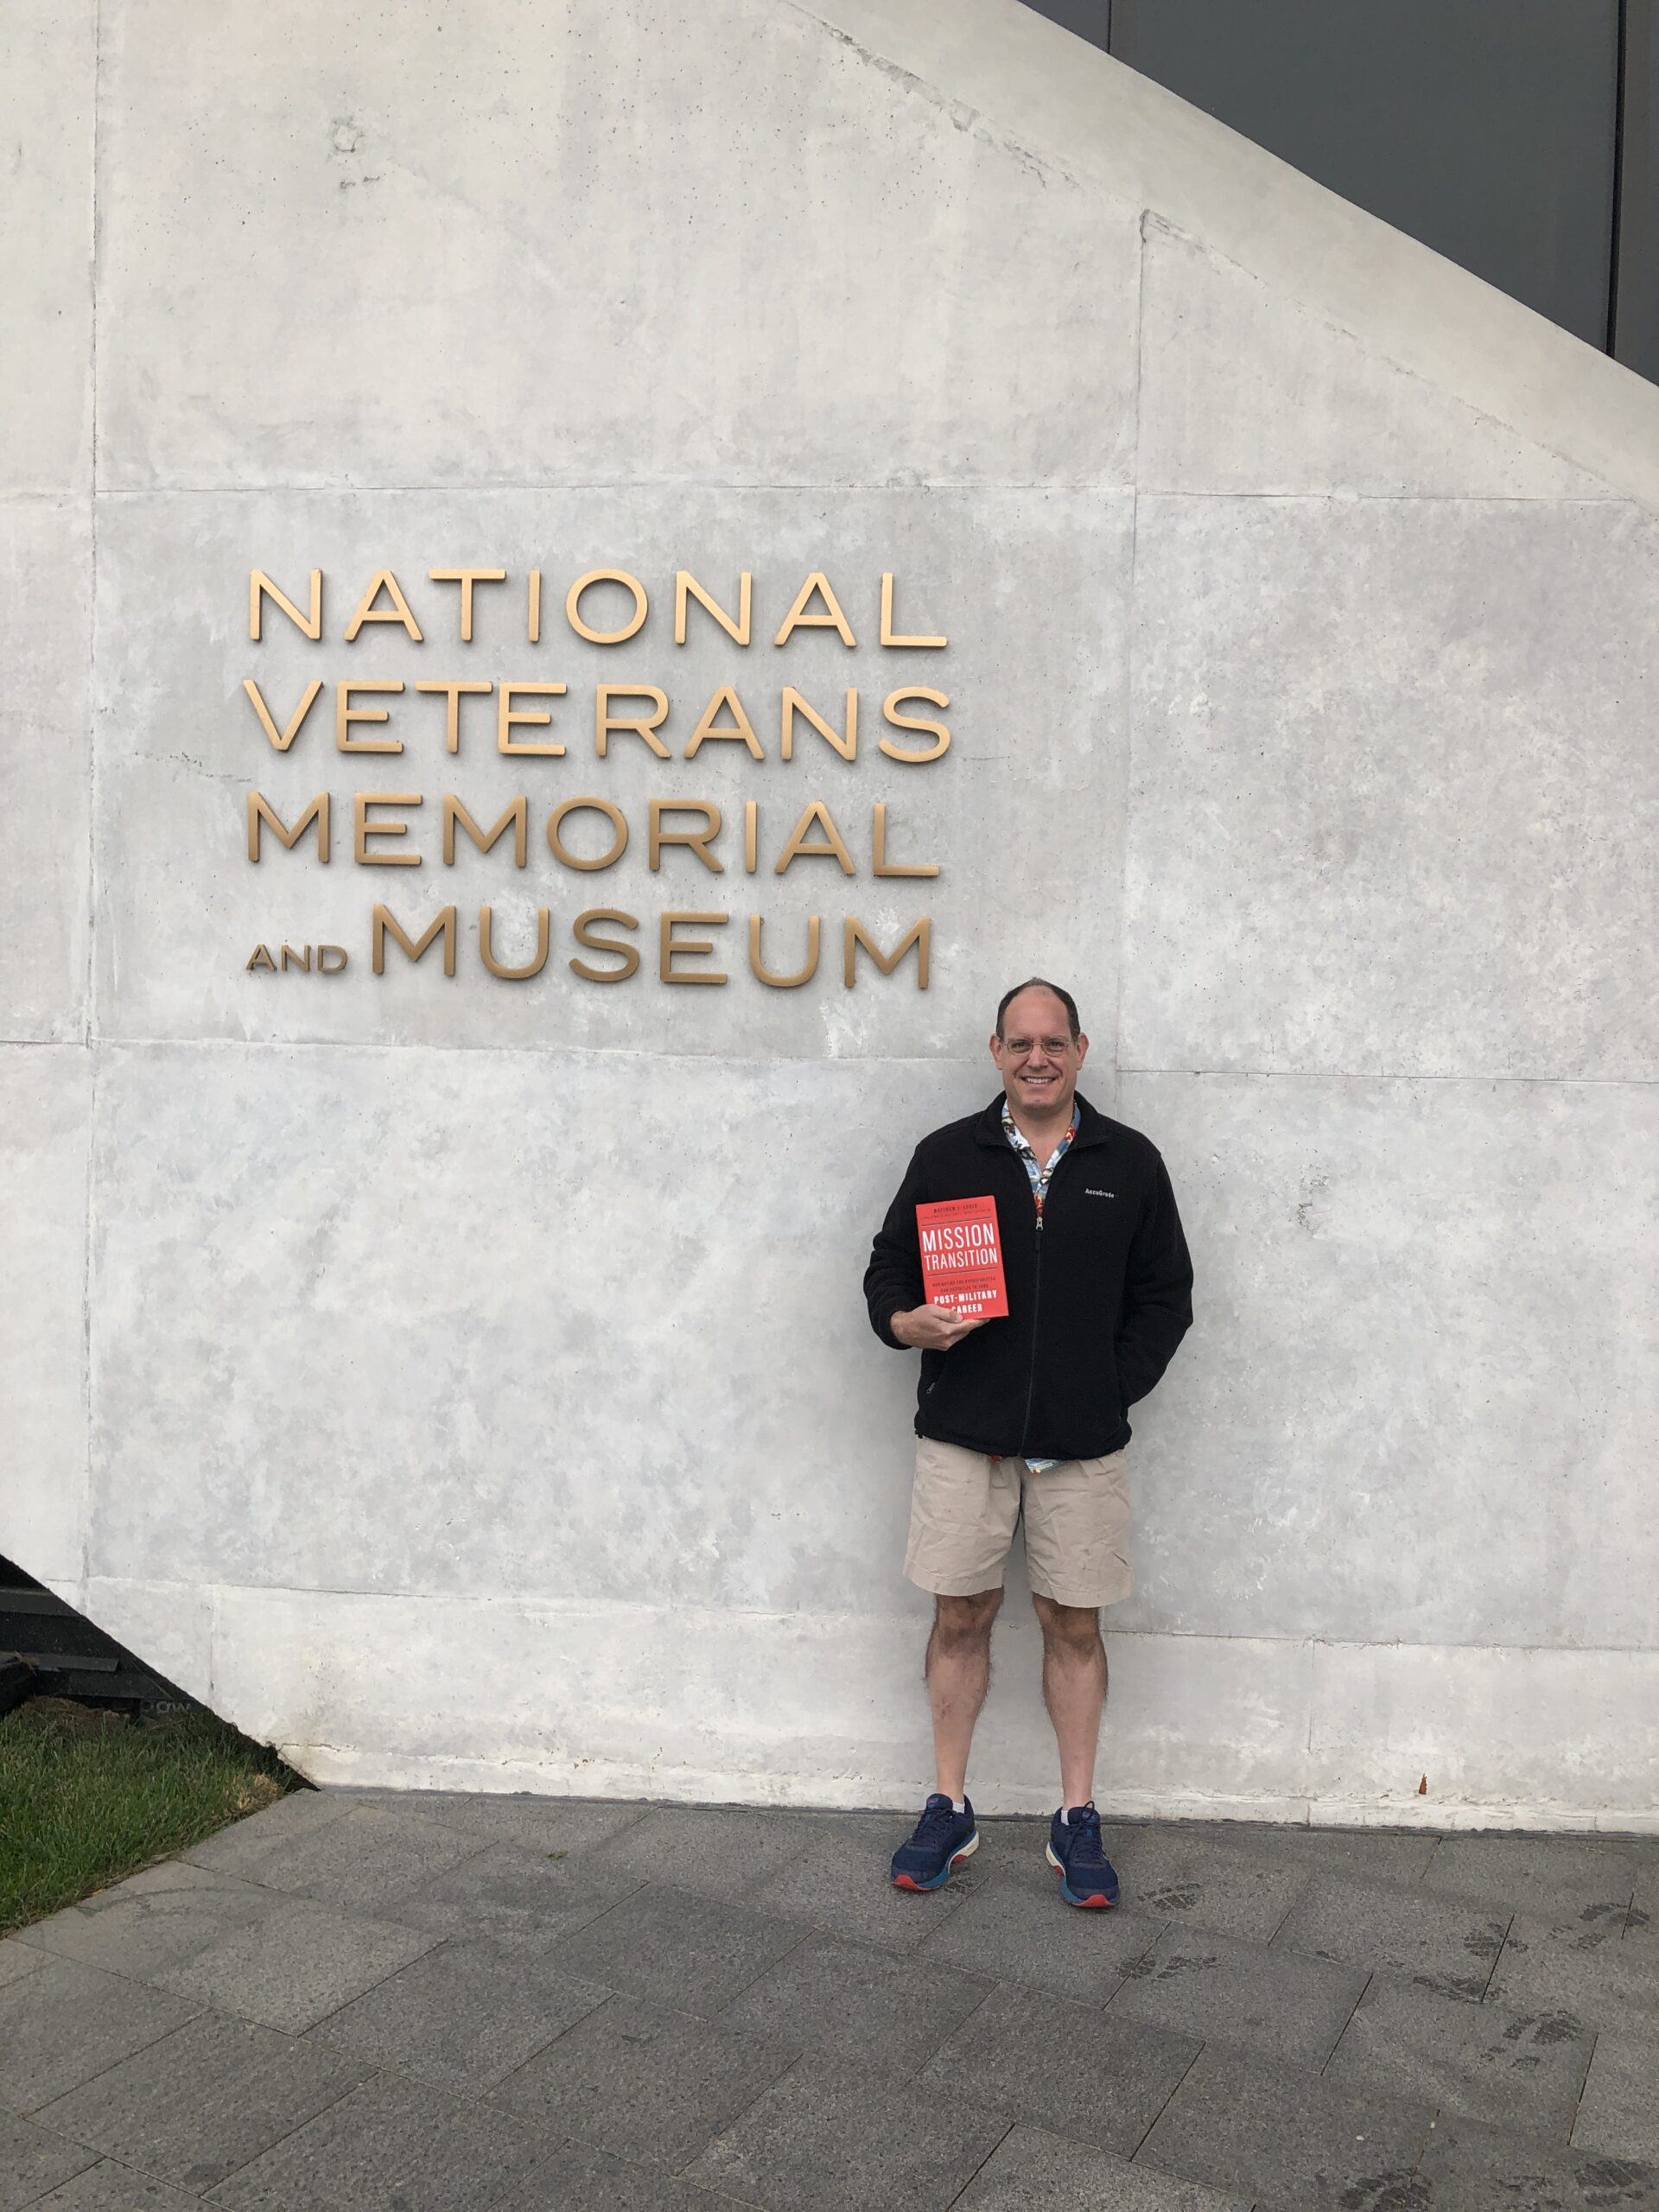 National Veterans Memorial & Museum